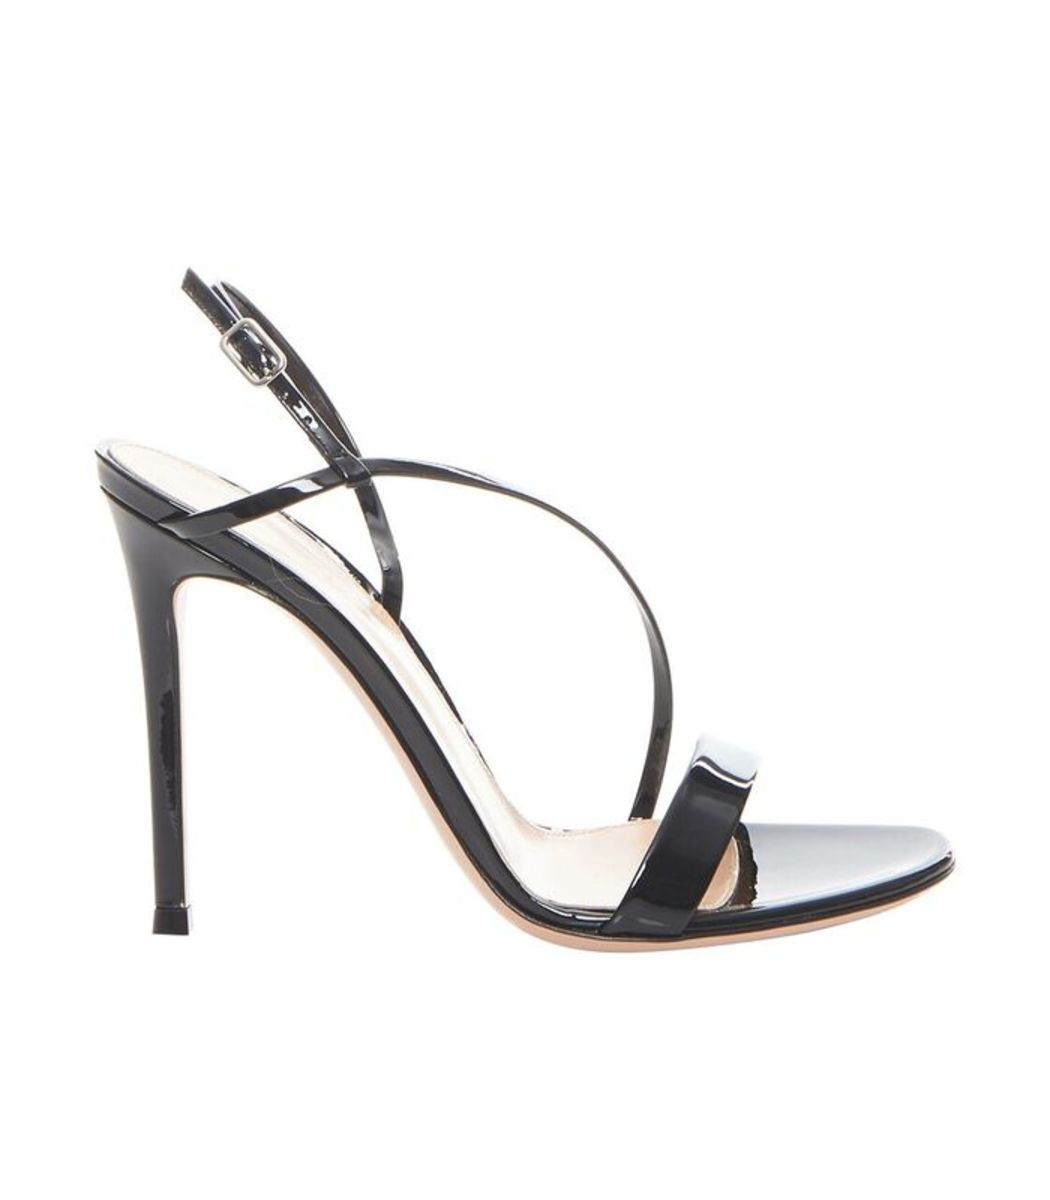 Manhattan Strappy Patent Leather Sandal